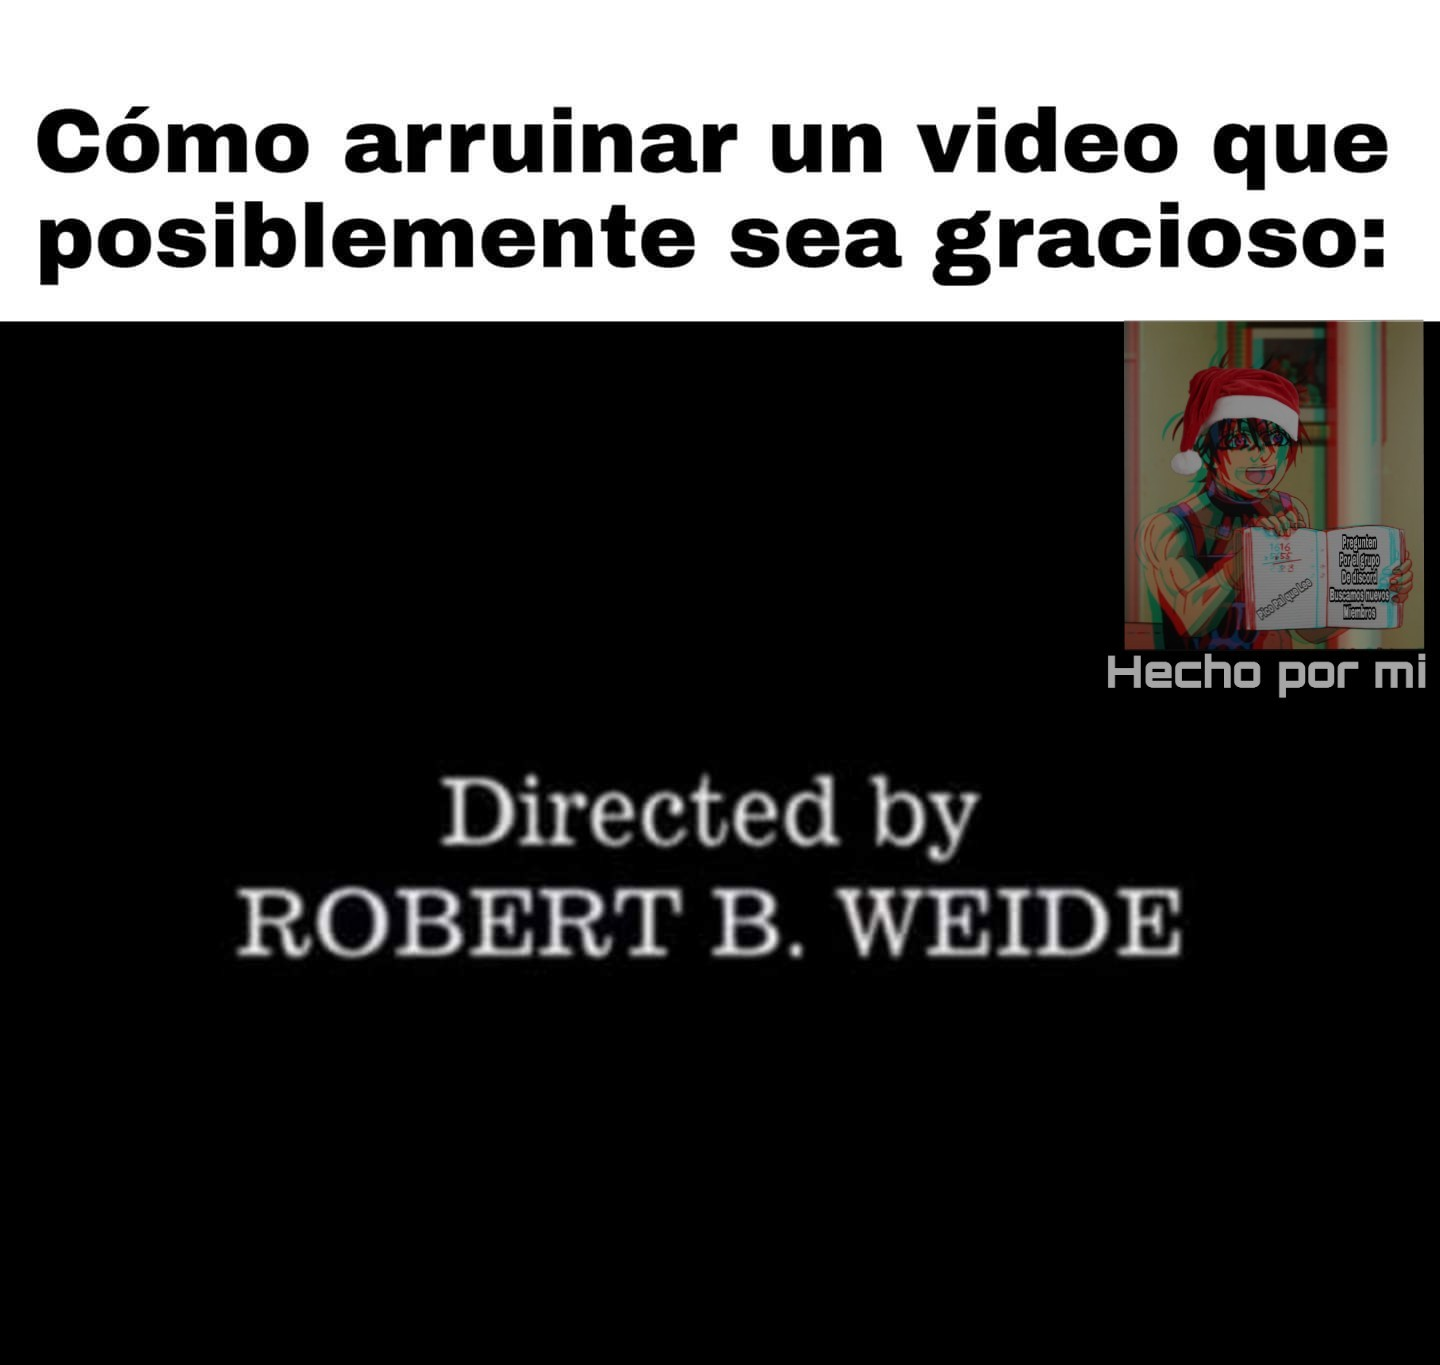 Odio esos videos - meme